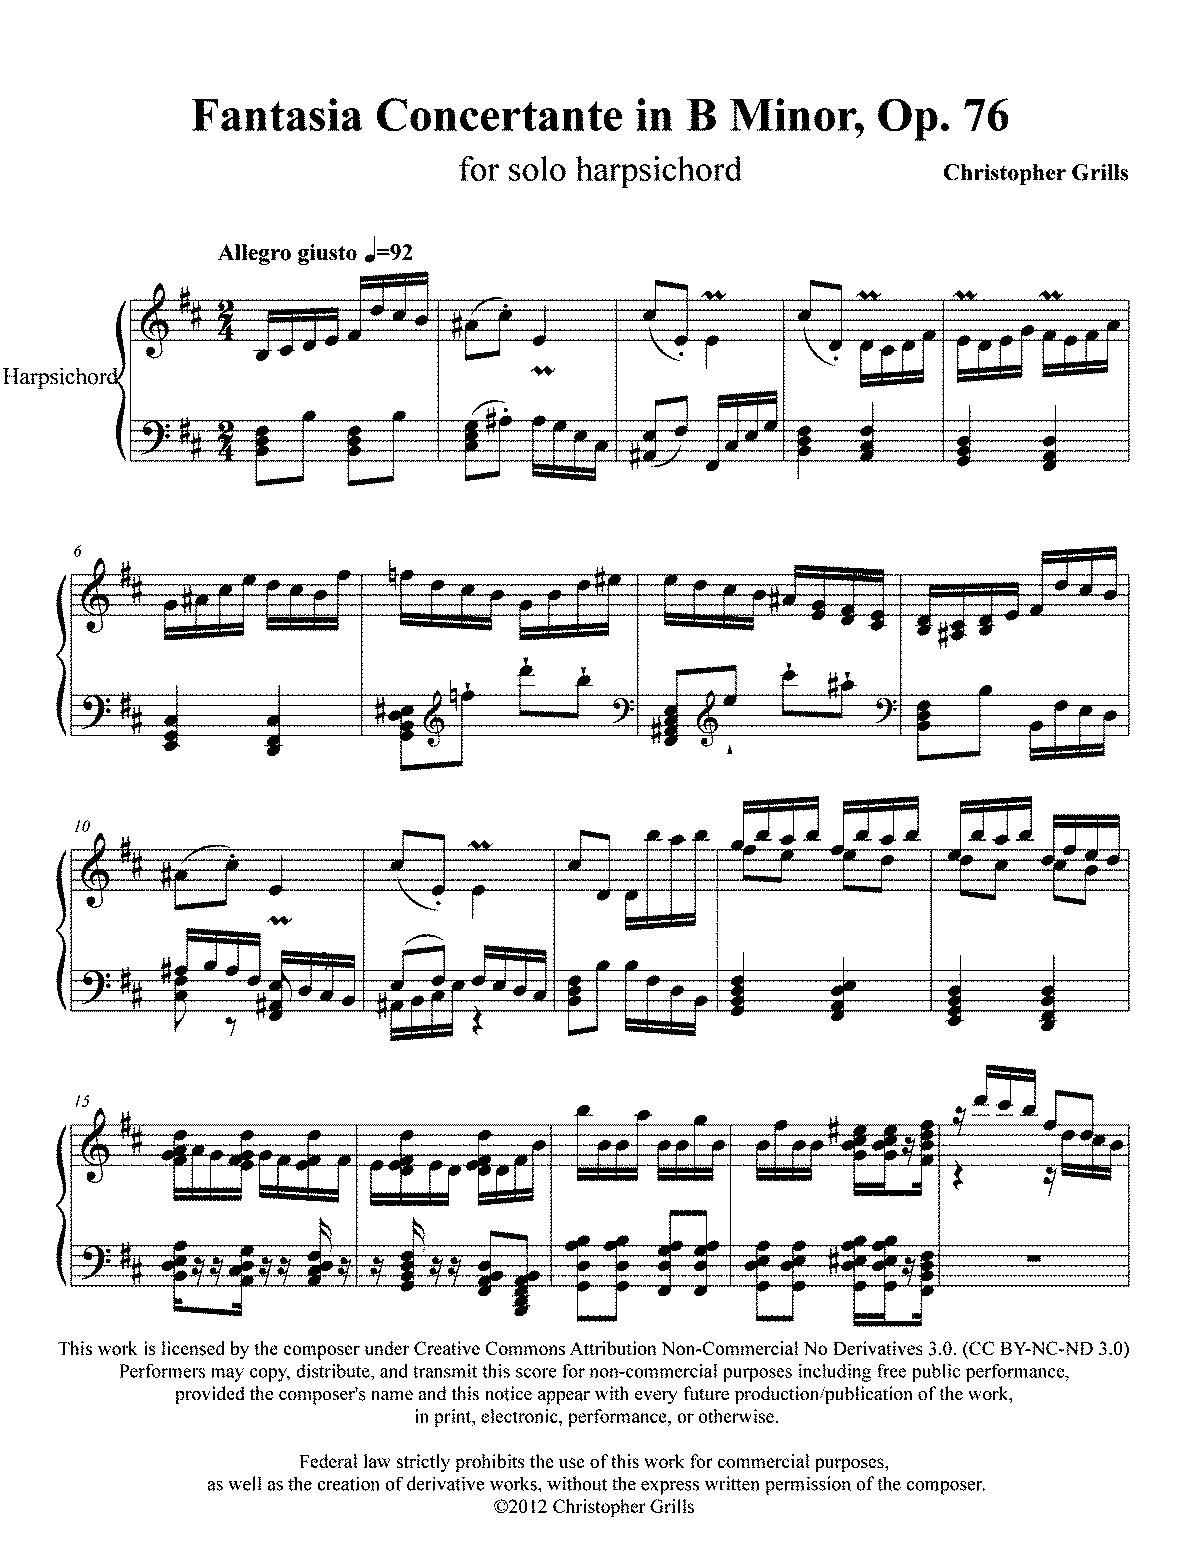 PMLP423050-Fantasia Concertante in B Minor - Harpsichord.mus.pdf